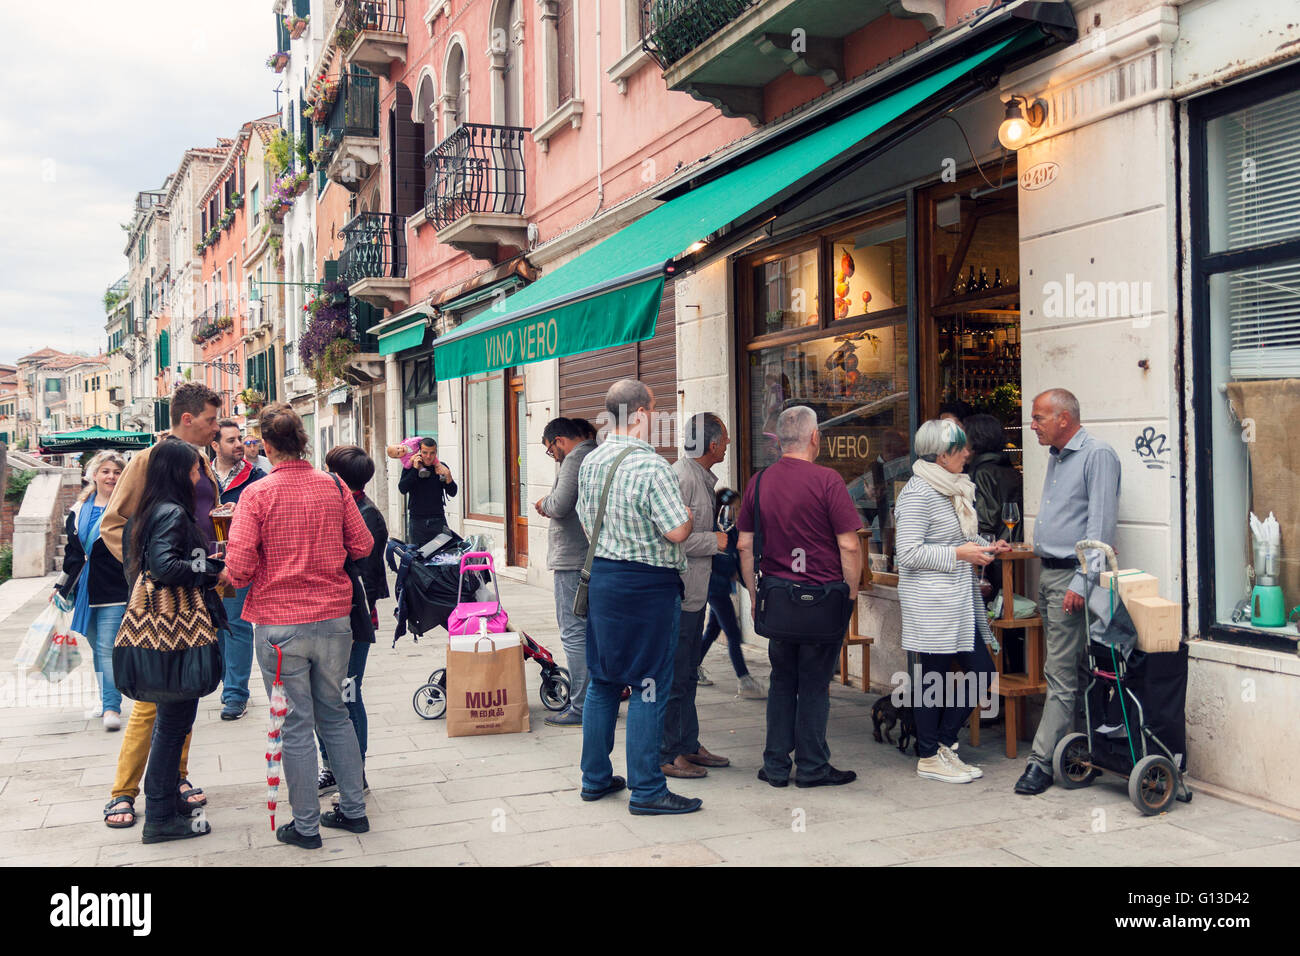 Crowd of people drinking outside bar in Venice - Stock Image